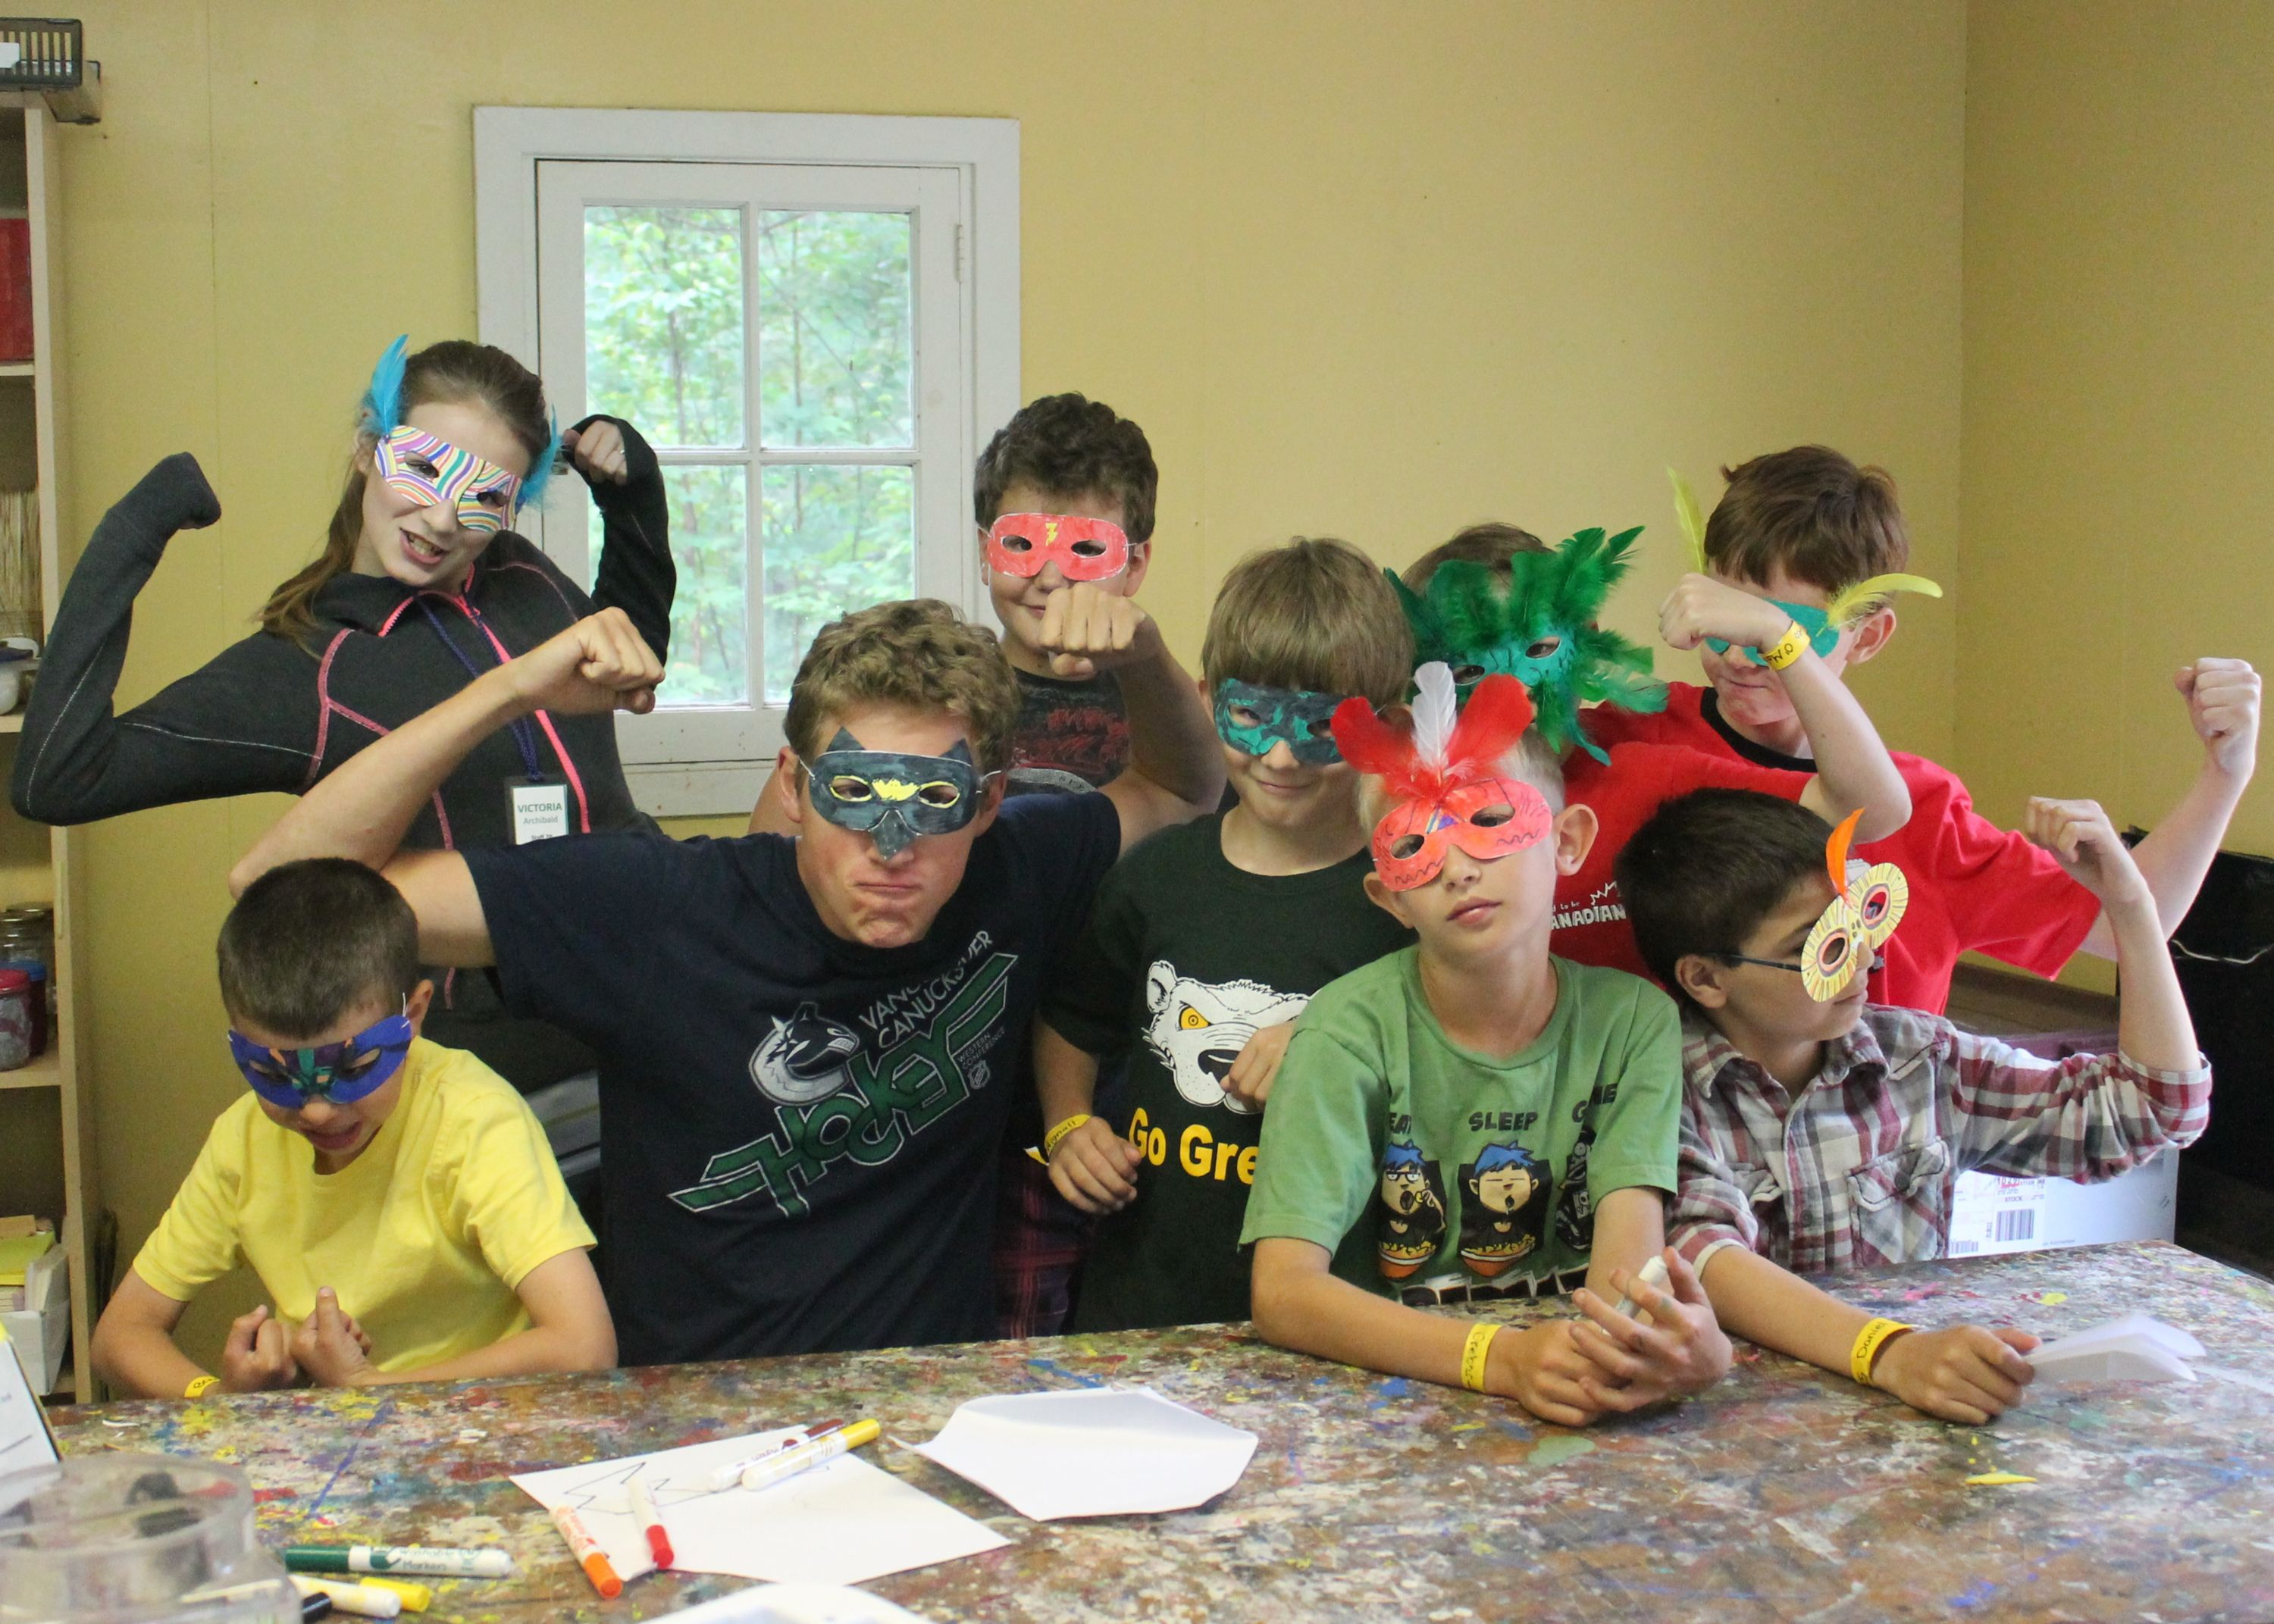 campers wearing their craft from christian summer camp in haliburton ontario